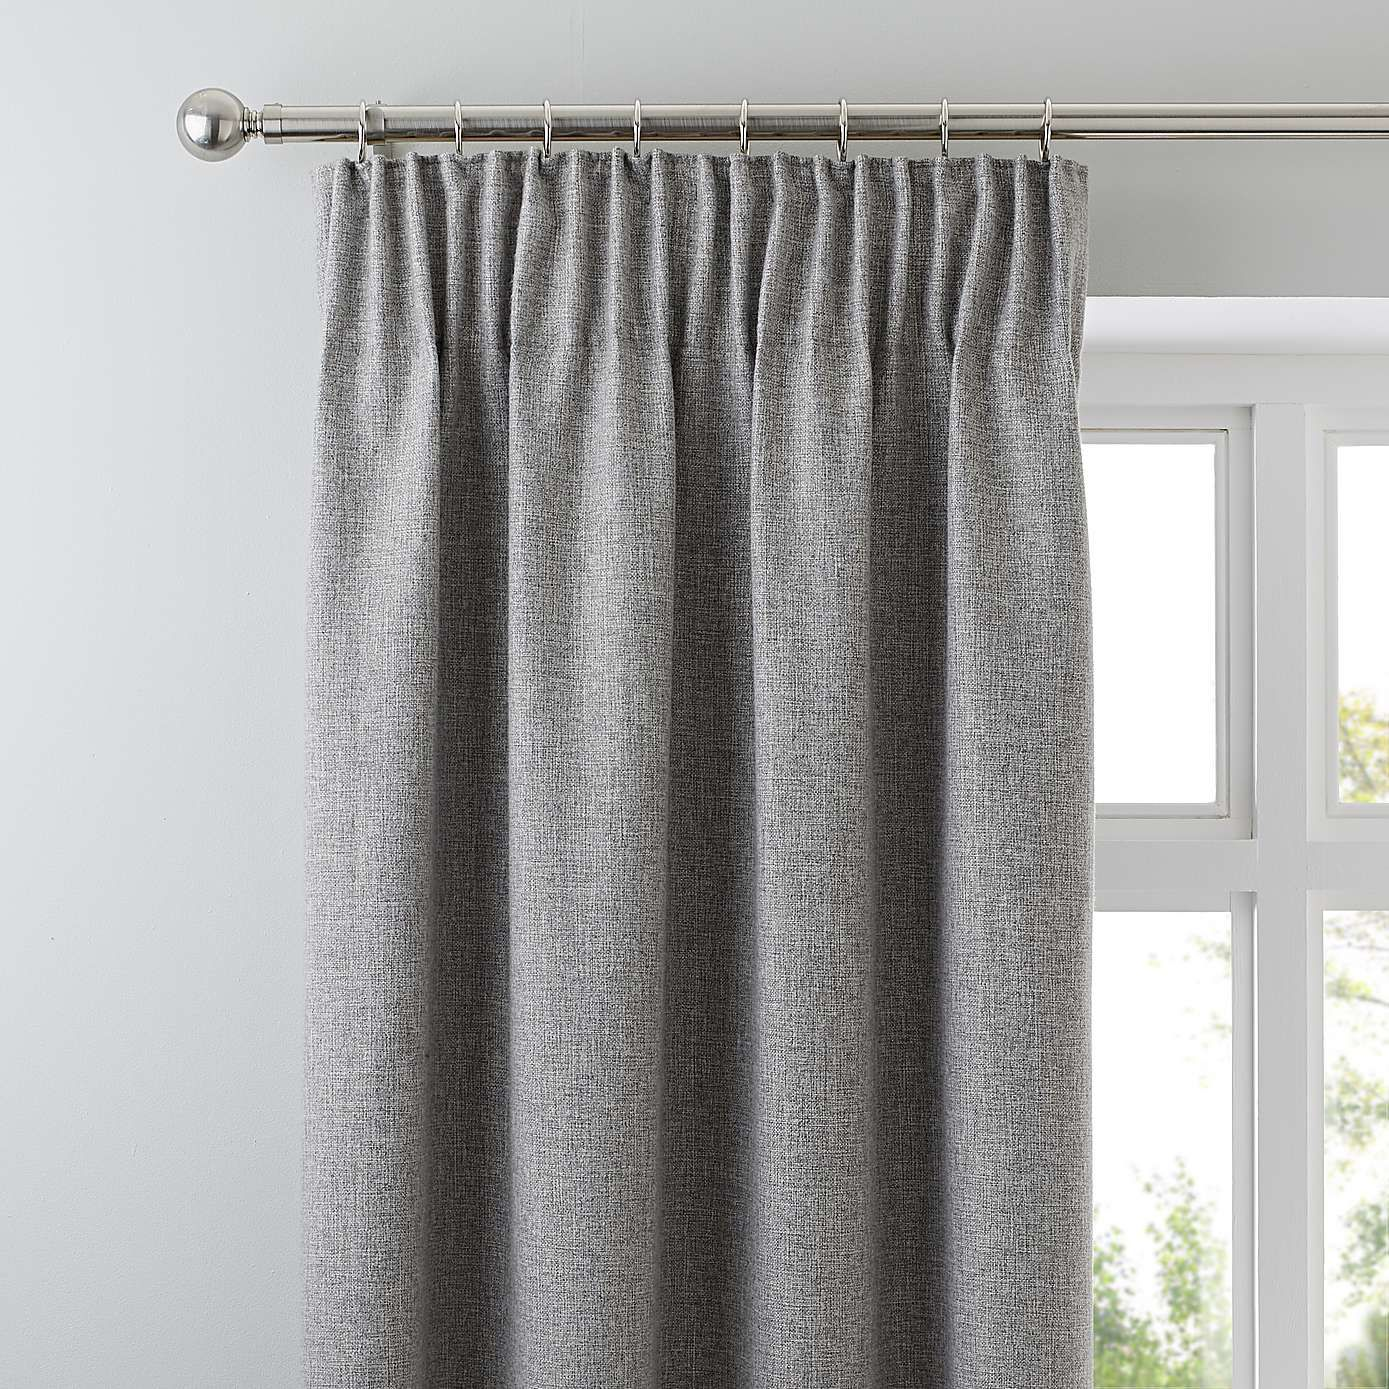 Jennings Grey Thermal Pencil Pleat Curtains Grey Pencil Pleat Curtains Pleated Curtains Pencil Pleat